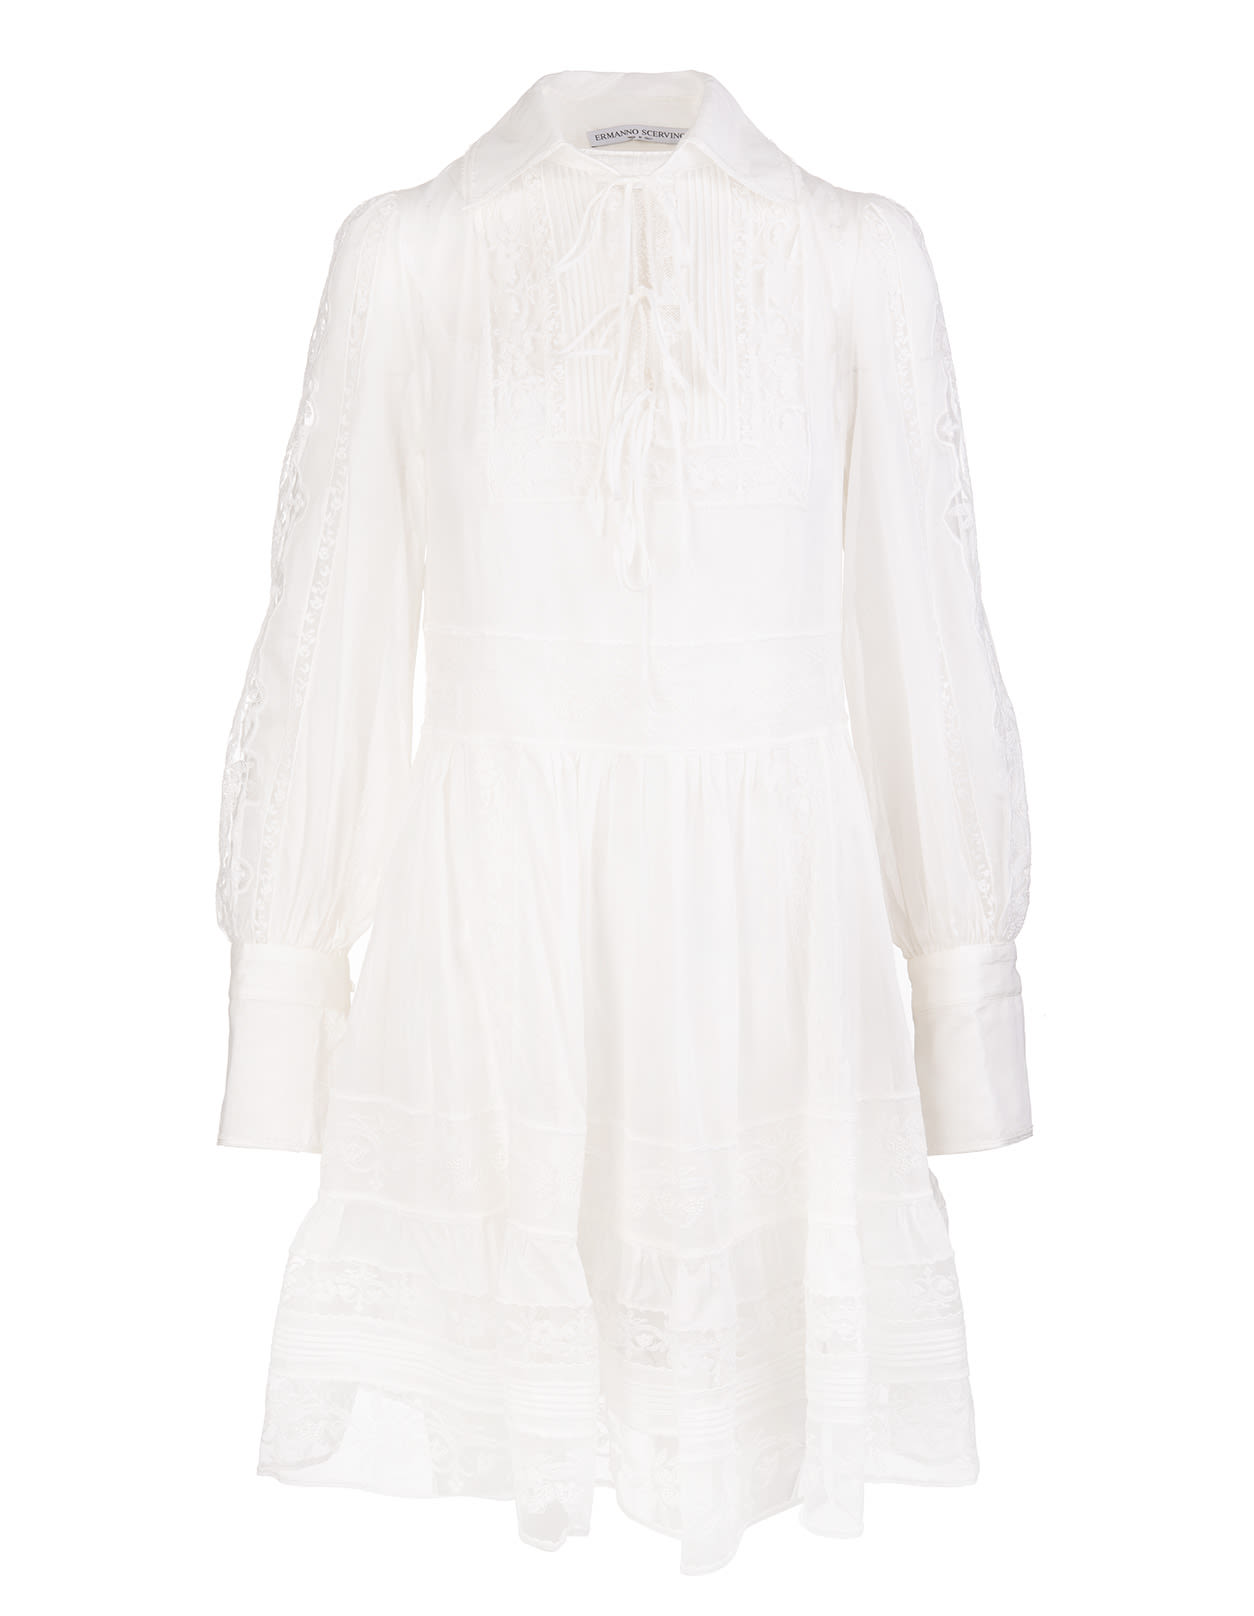 Ermanno Scervino White Short Dress With Lace Inserts